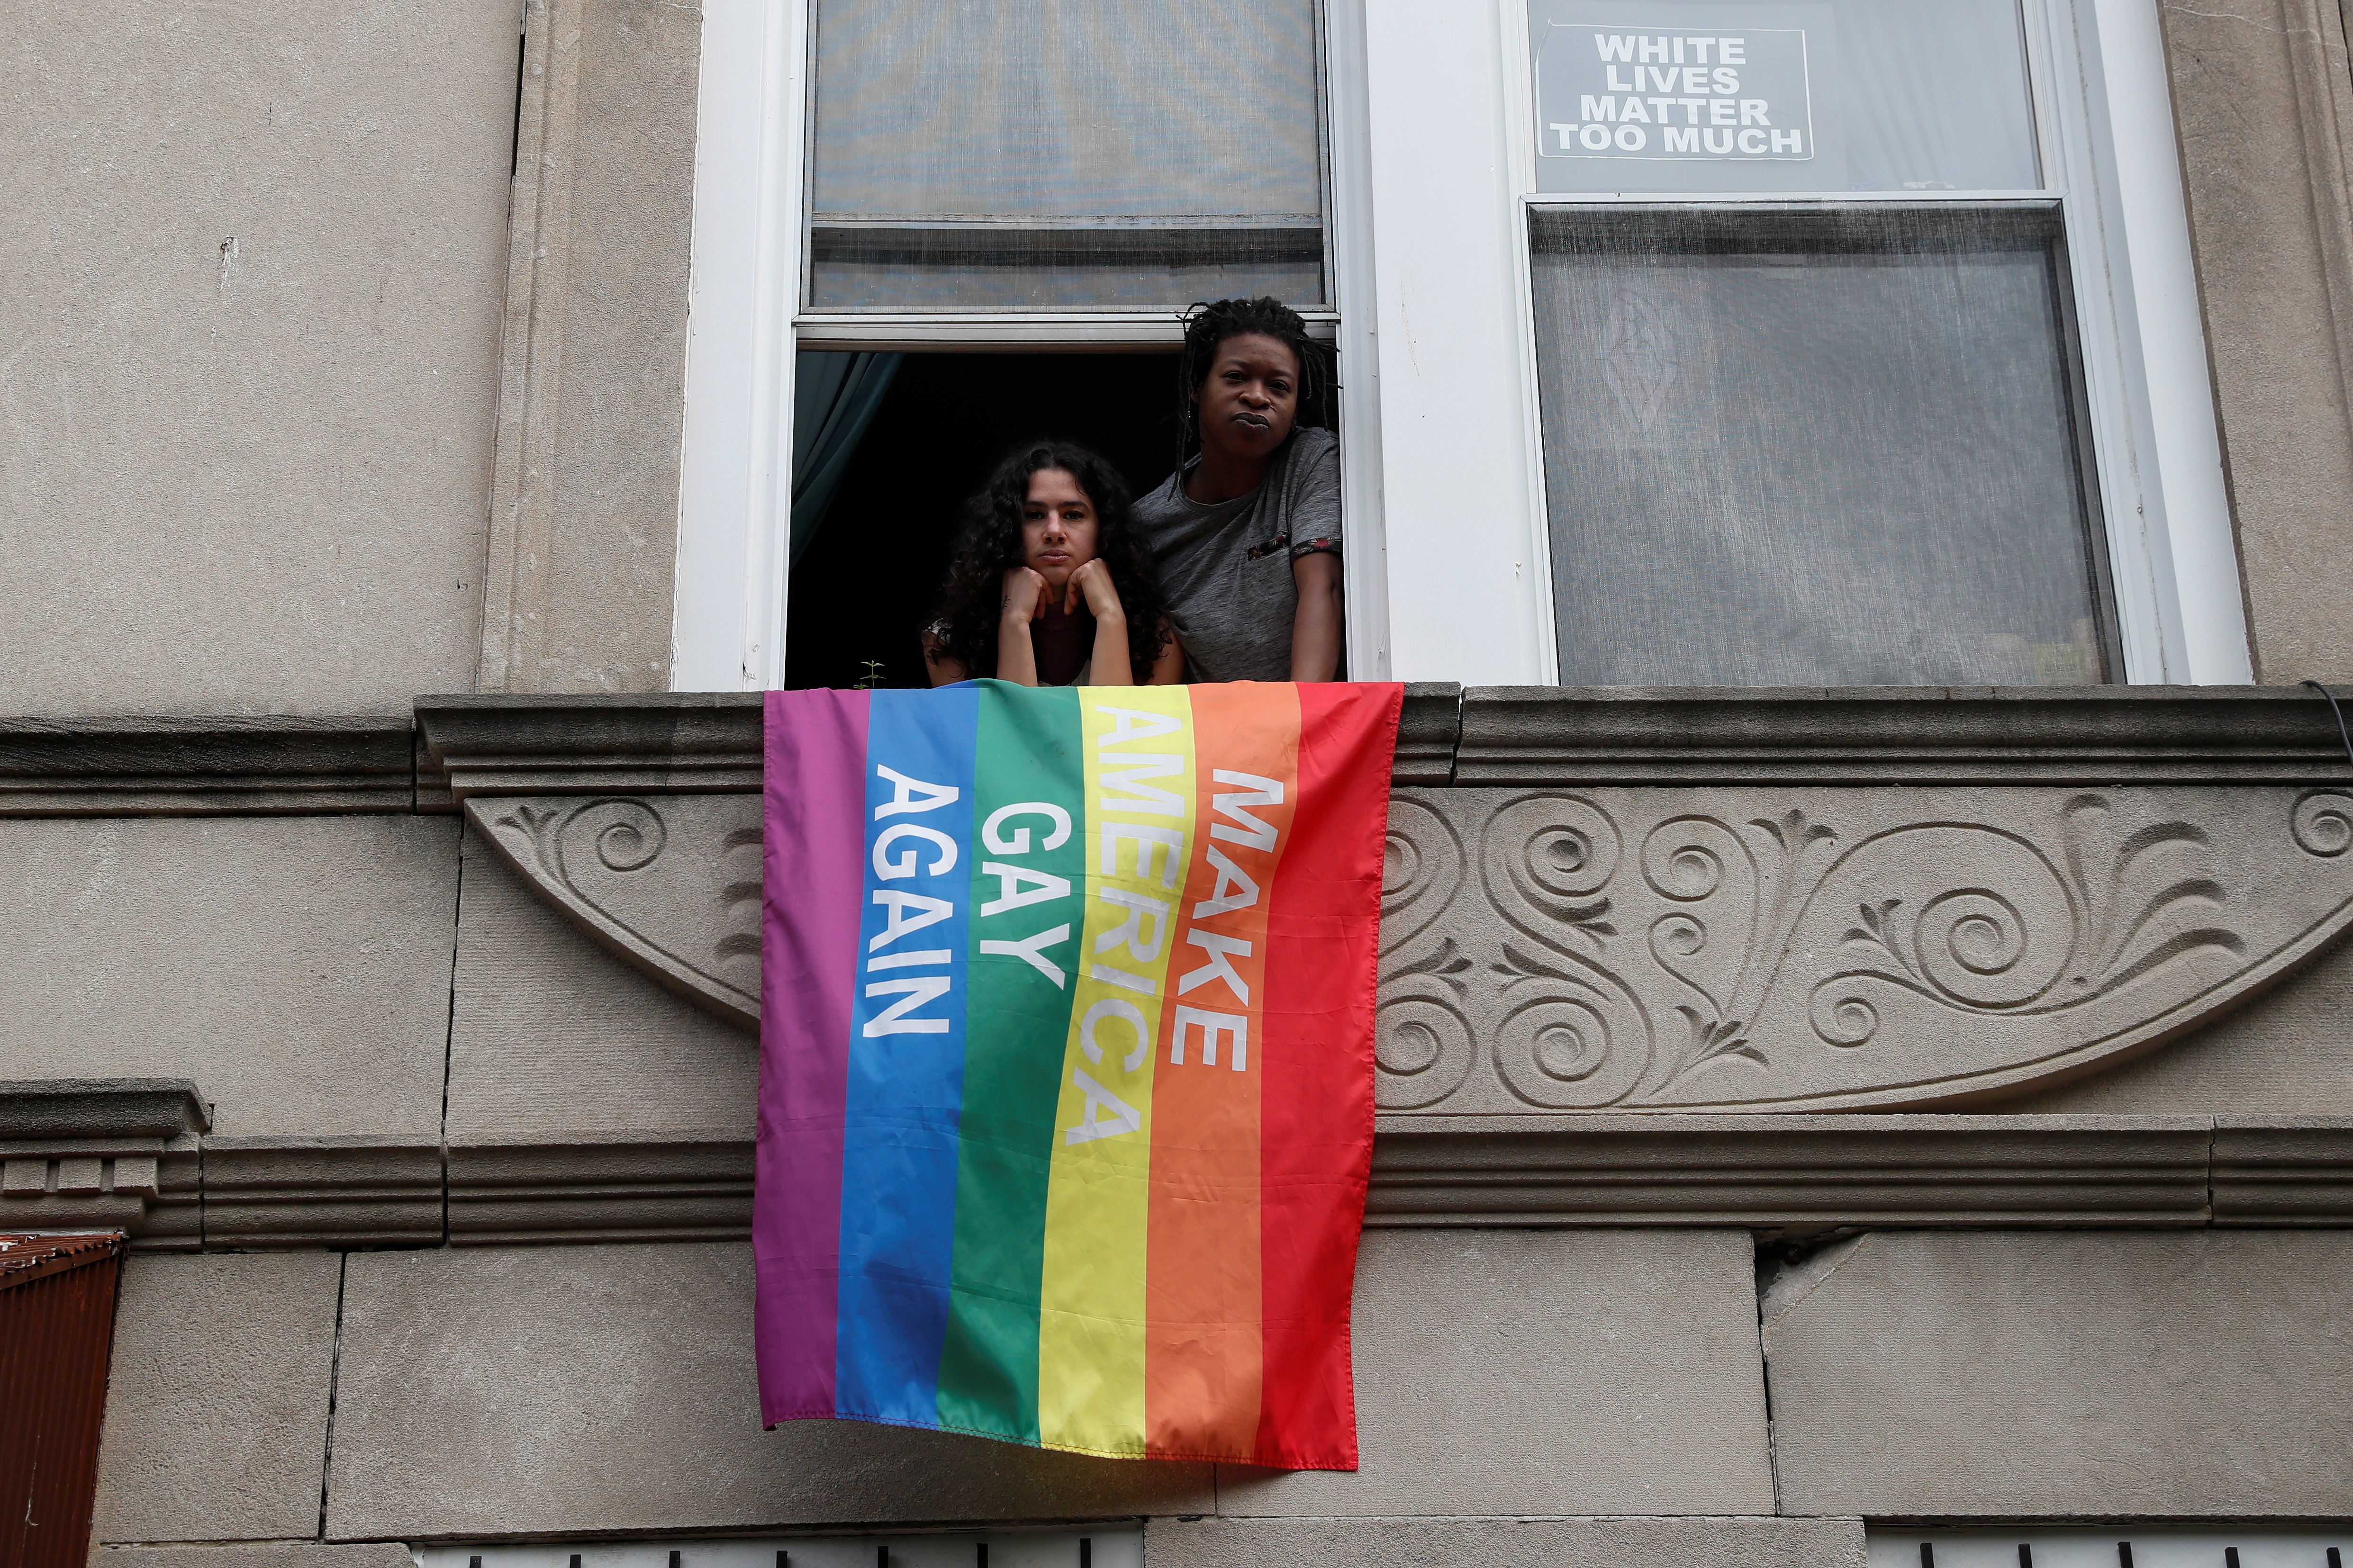 Elsa Eli Waithe and Ada Reso, 'Slavers of New York' campaign co-founders, pose at a window sill in the Bedford-Stuyvesant section of the Brooklyn borough of New York City, U.S., May 24, 2021. REUTERS/Shannon Stapleton